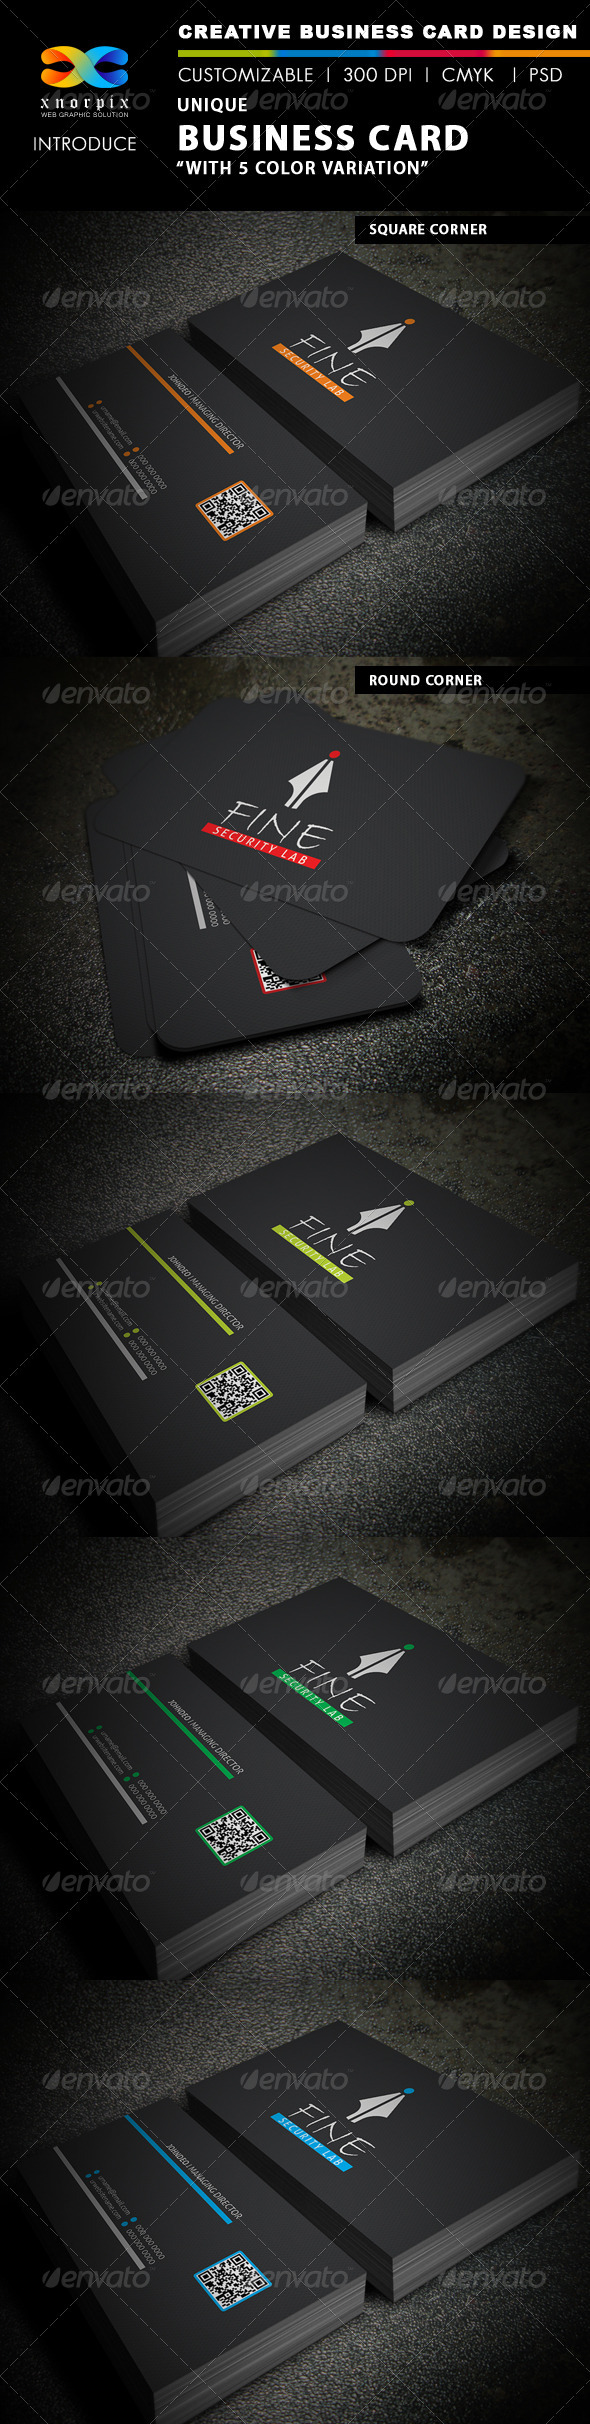 GraphicRiver Unique Business Card 3881901